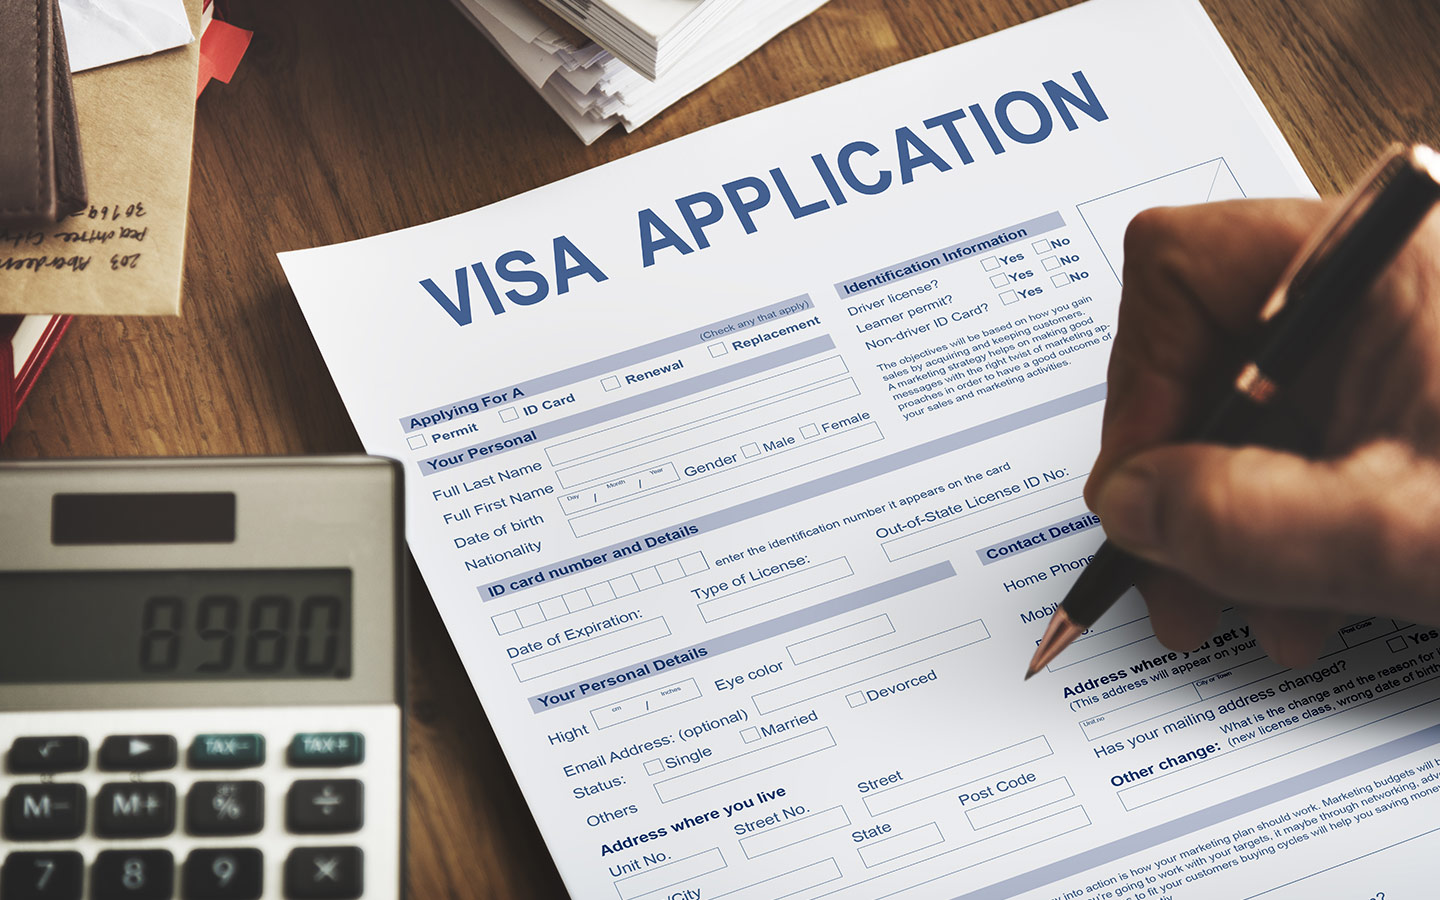 Investor visa application form with passport and phone beside it